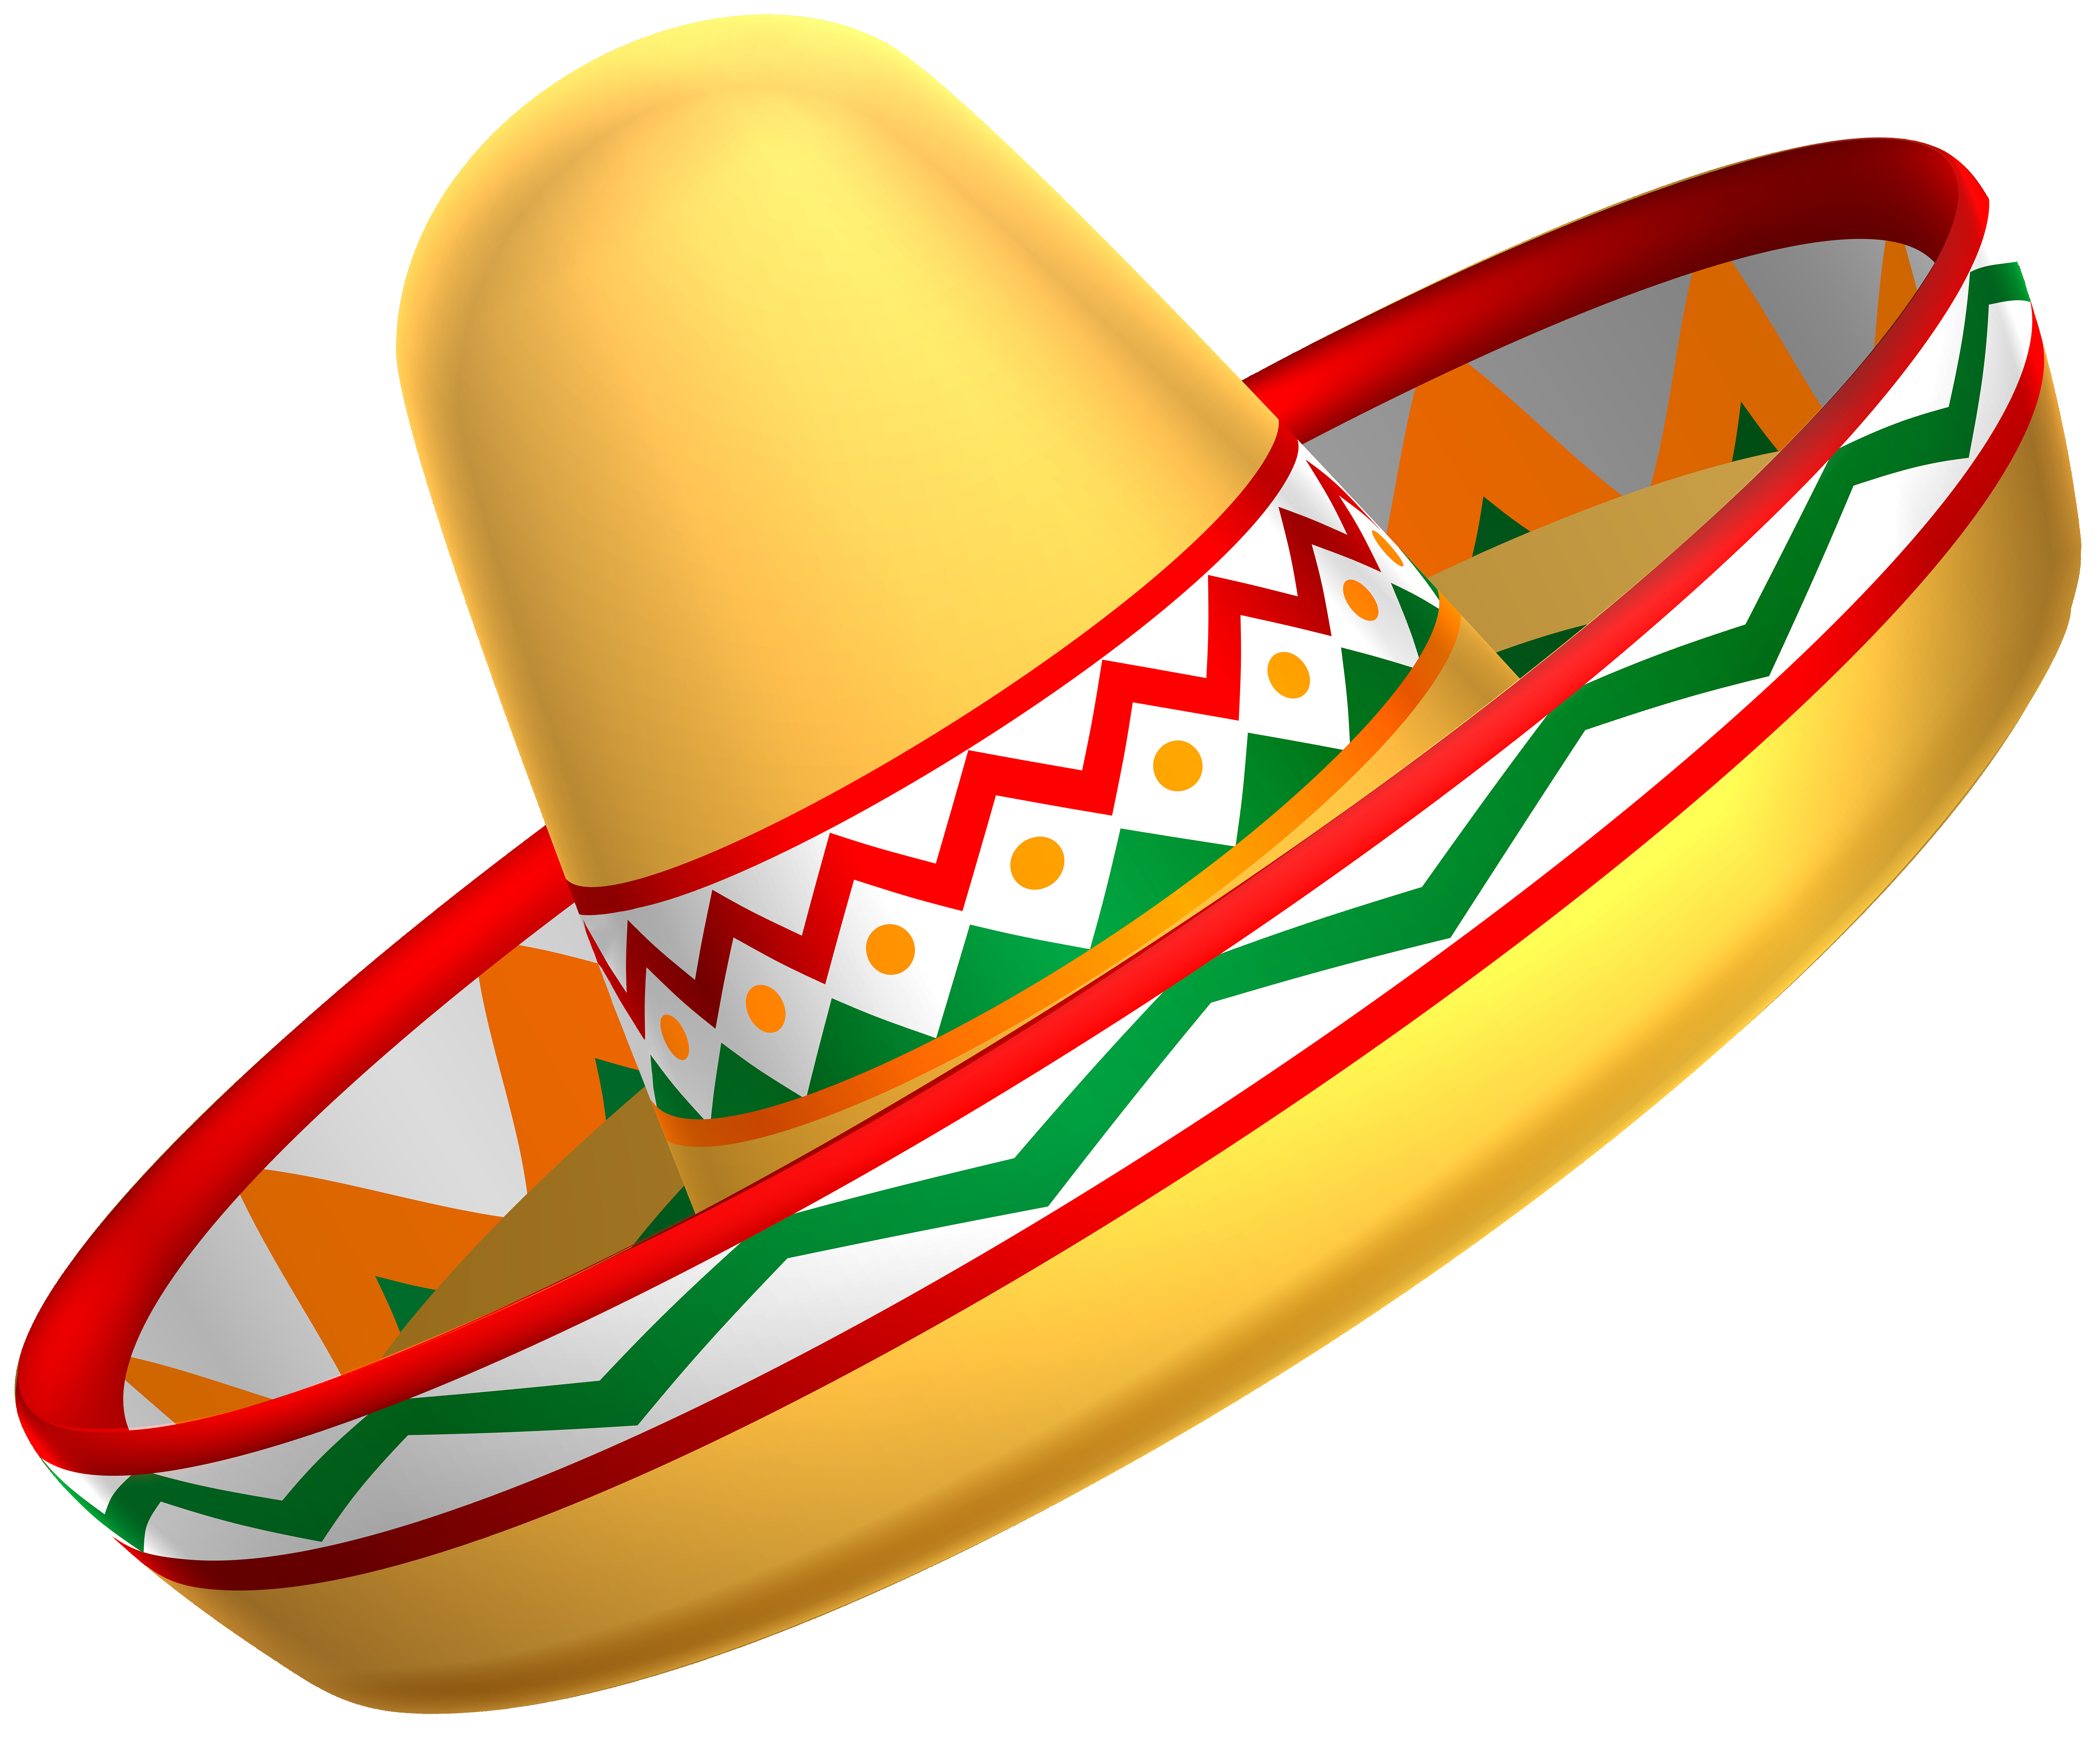 Sombrero clipart png clip freeuse library Mexican Sombrero Hat Transparent PNG Clip Art | Gallery ... clip freeuse library